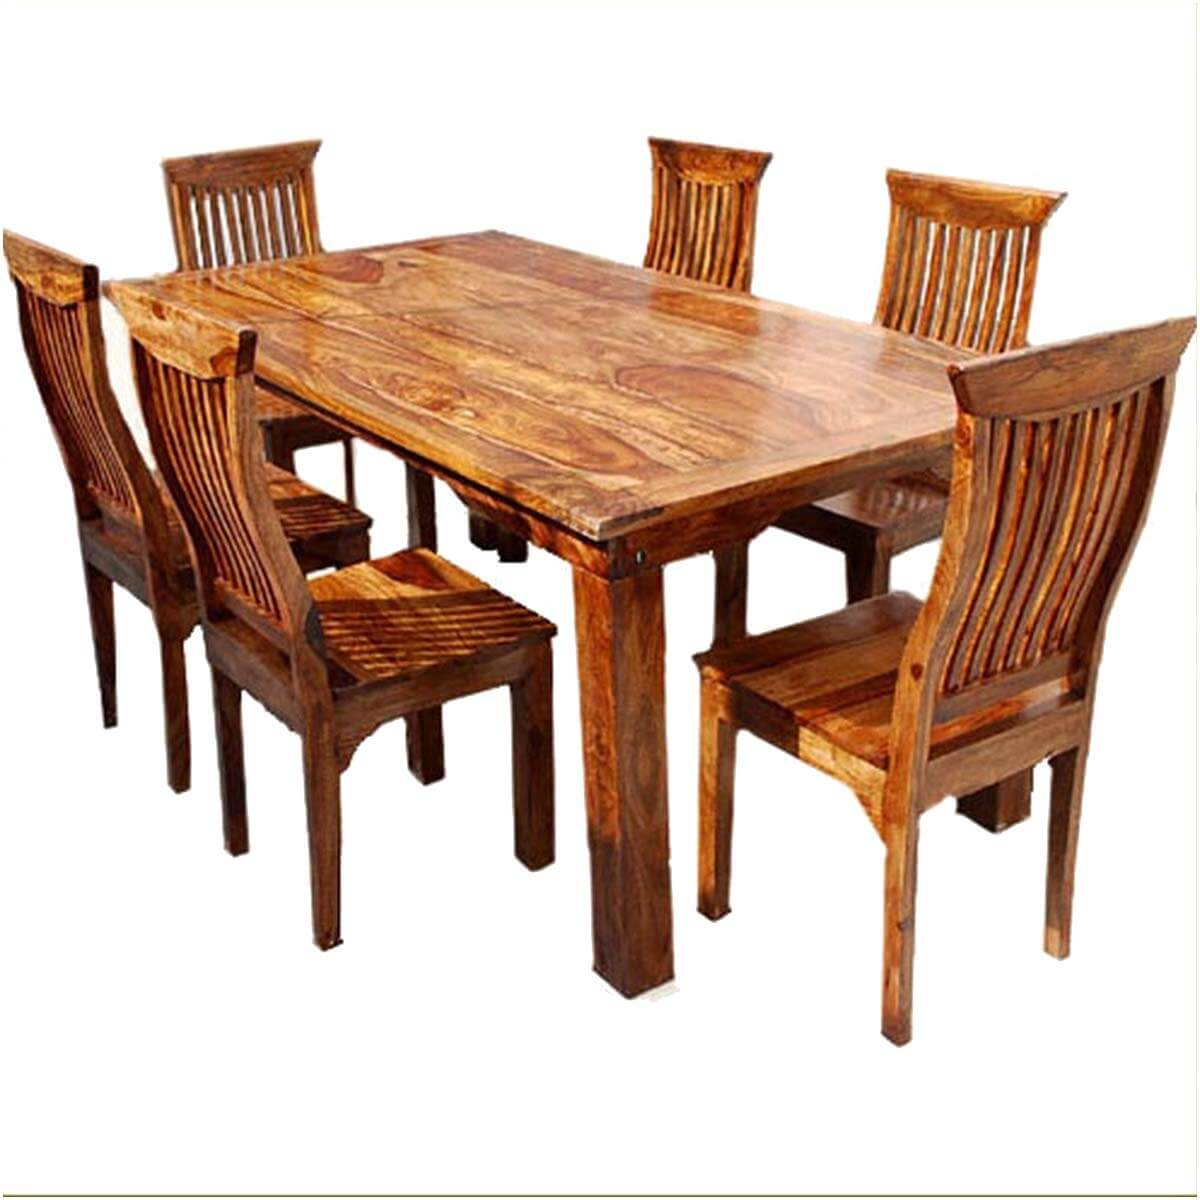 Dallas ranch solid wood rustic dining table chairs hutch set for Breakfast sets furniture